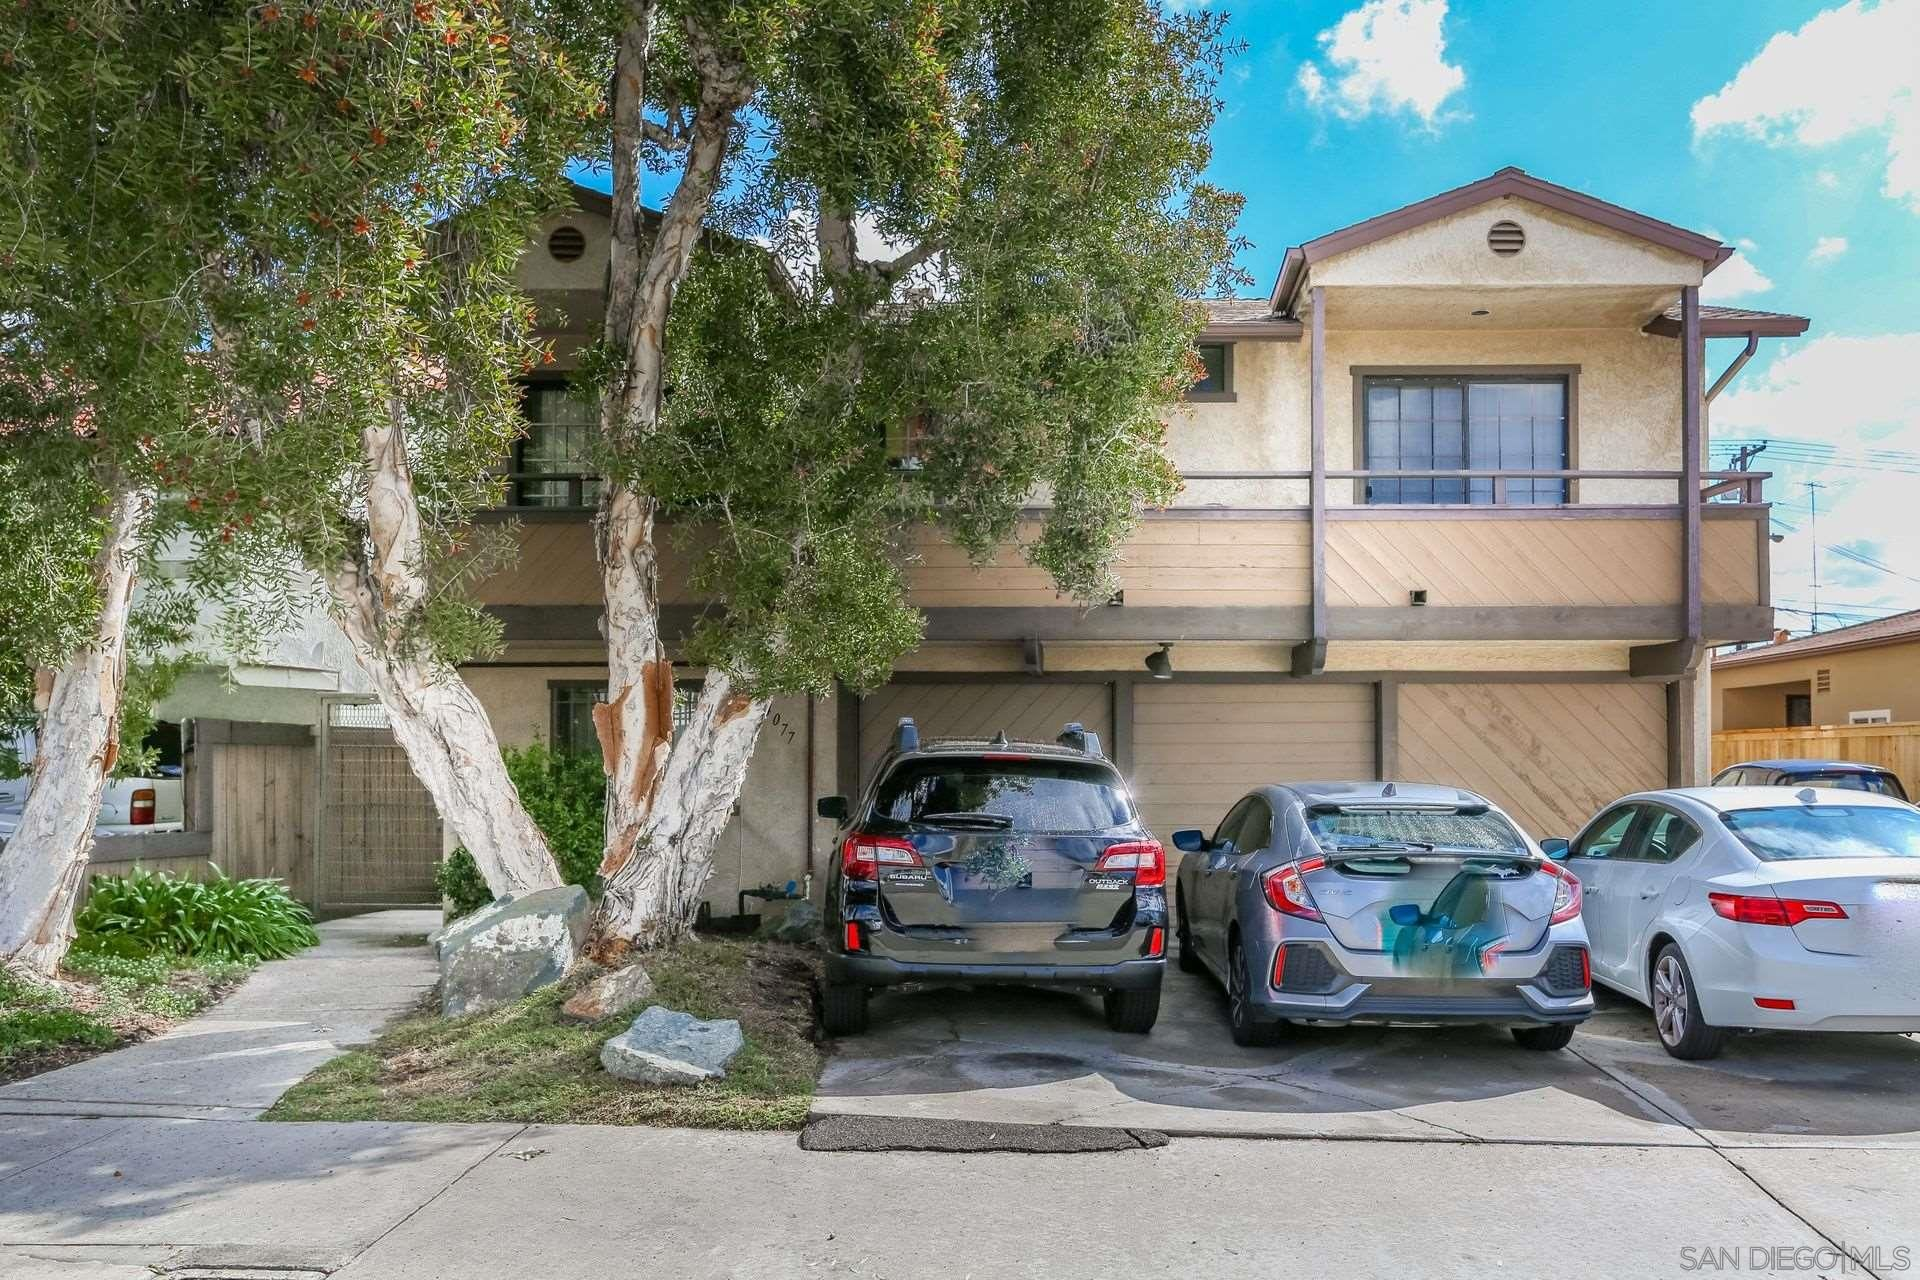 Main Photo: NORTH PARK Condo for sale : 2 bedrooms : 4077 Illinois St #1 in San Diego